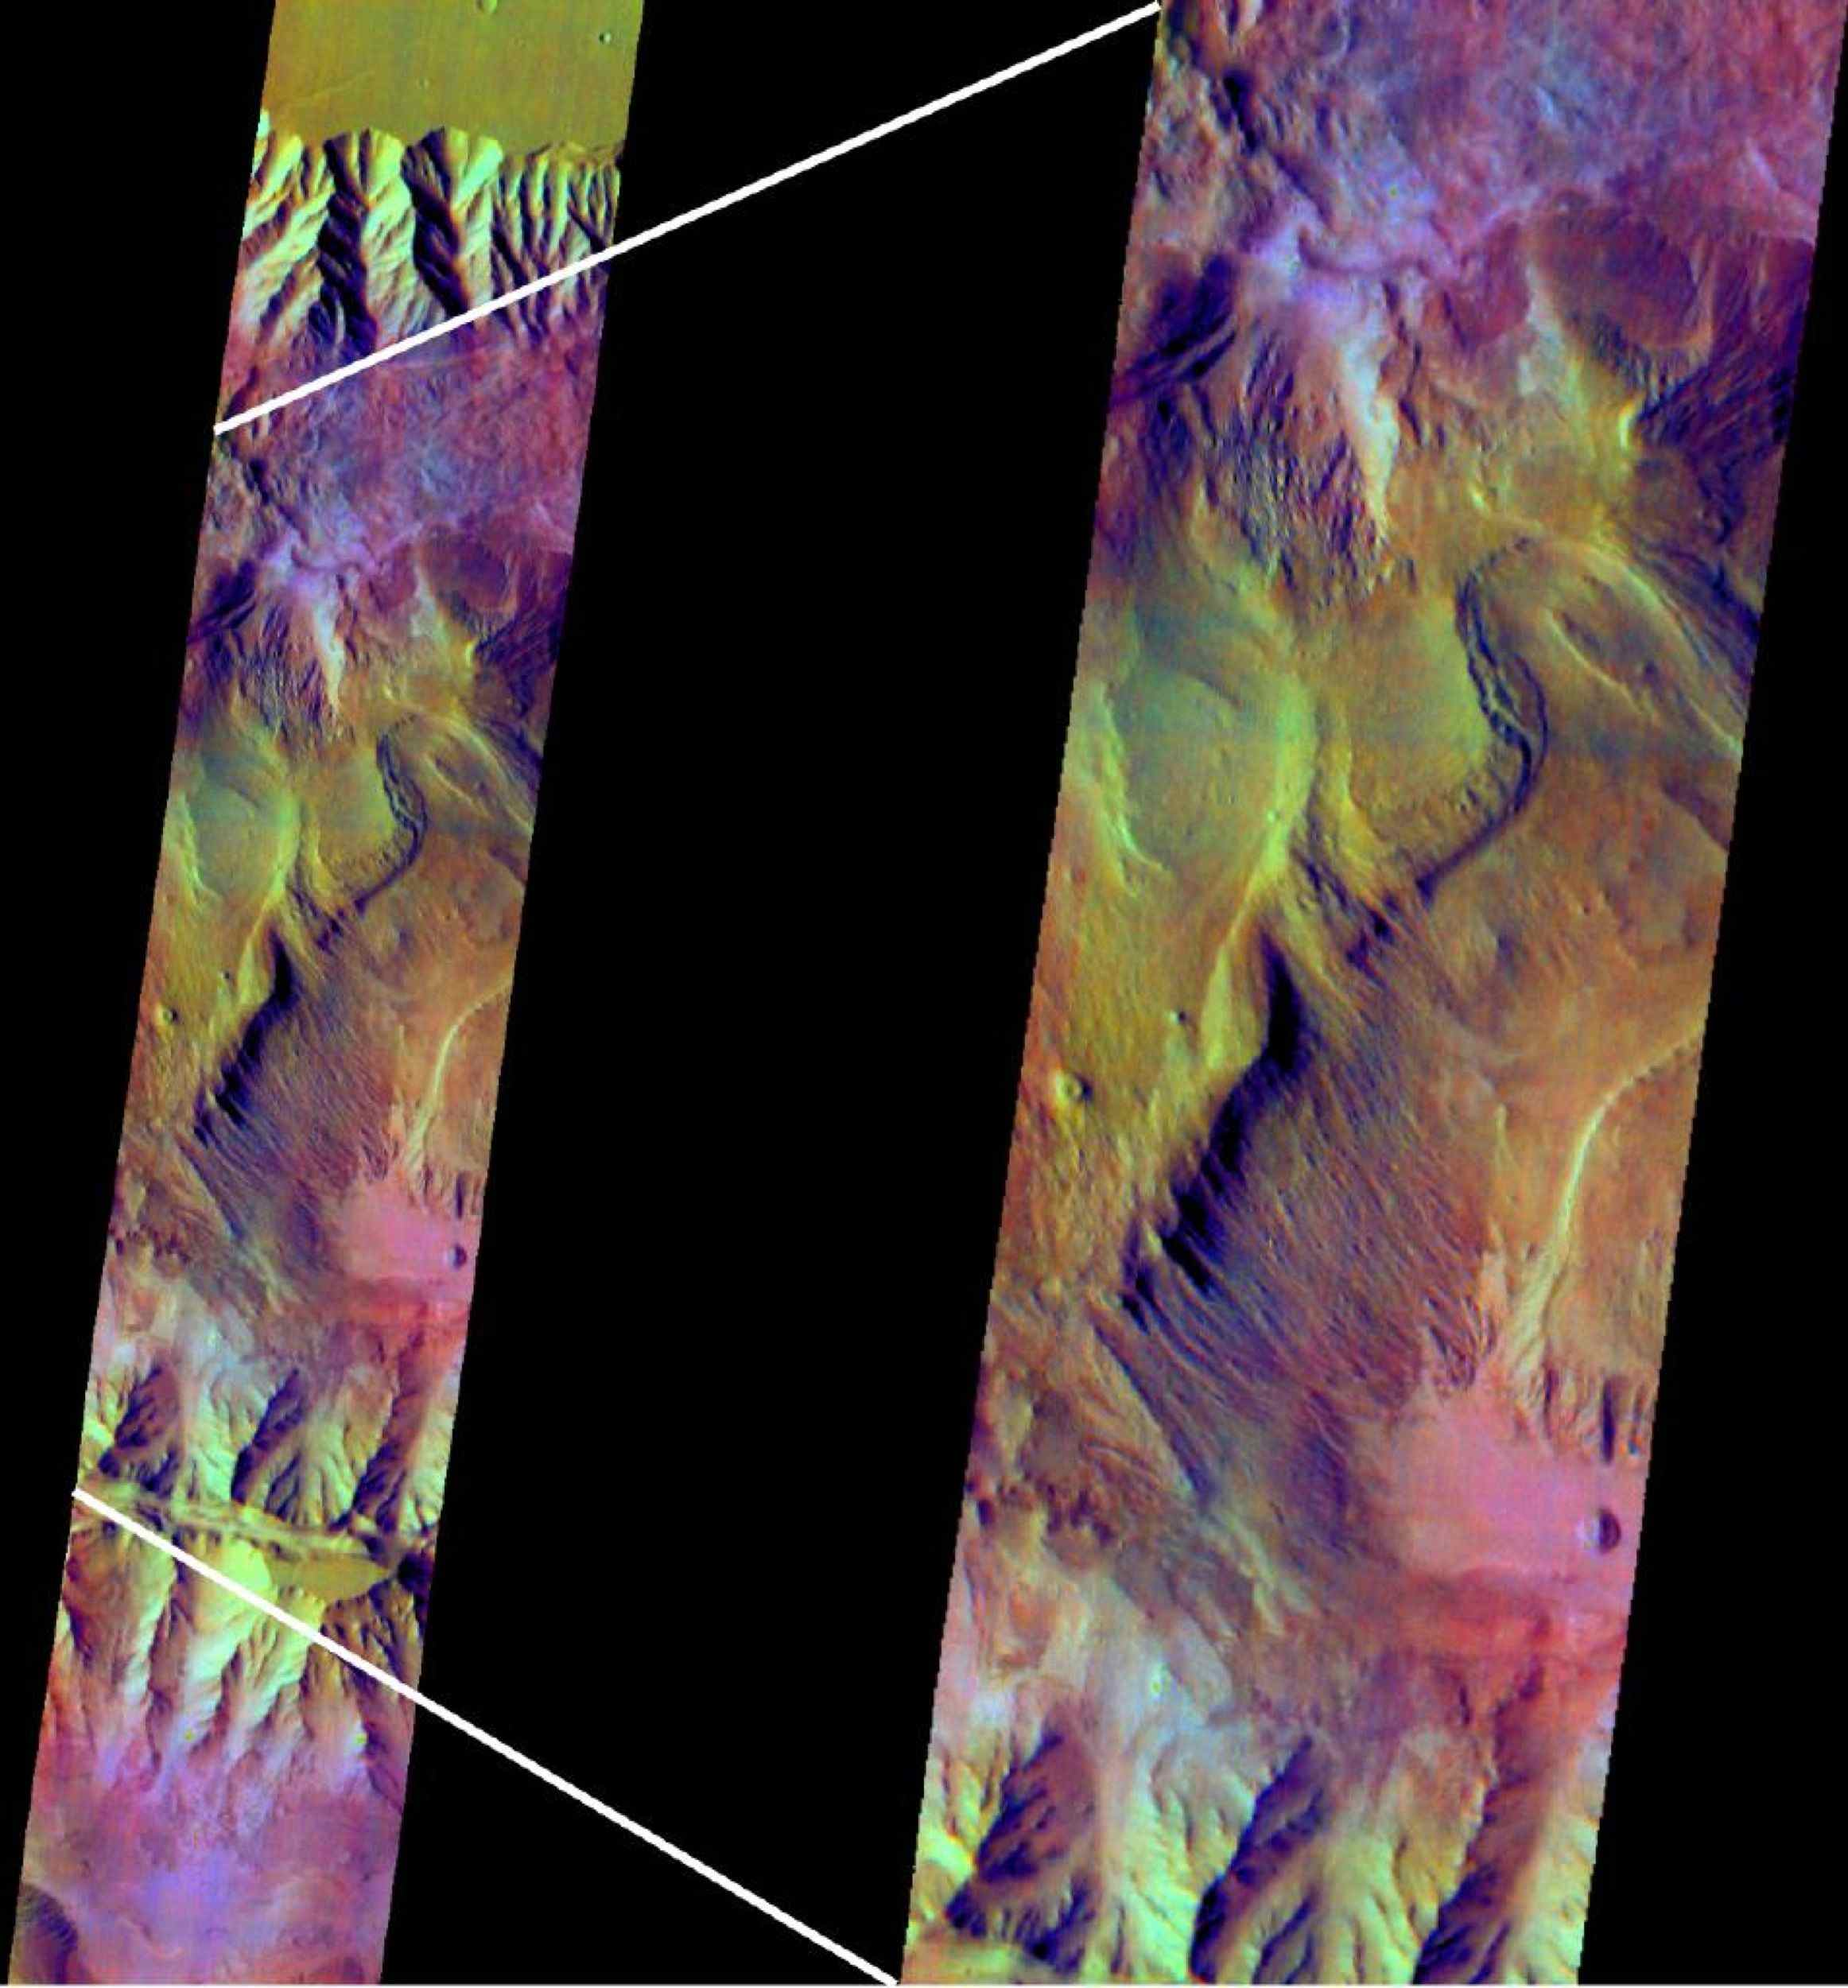 This false-color infrared image from NASA's Mars Odyssey was acquired over the region of Ophir and Candor Chasma in Valles Marineris.